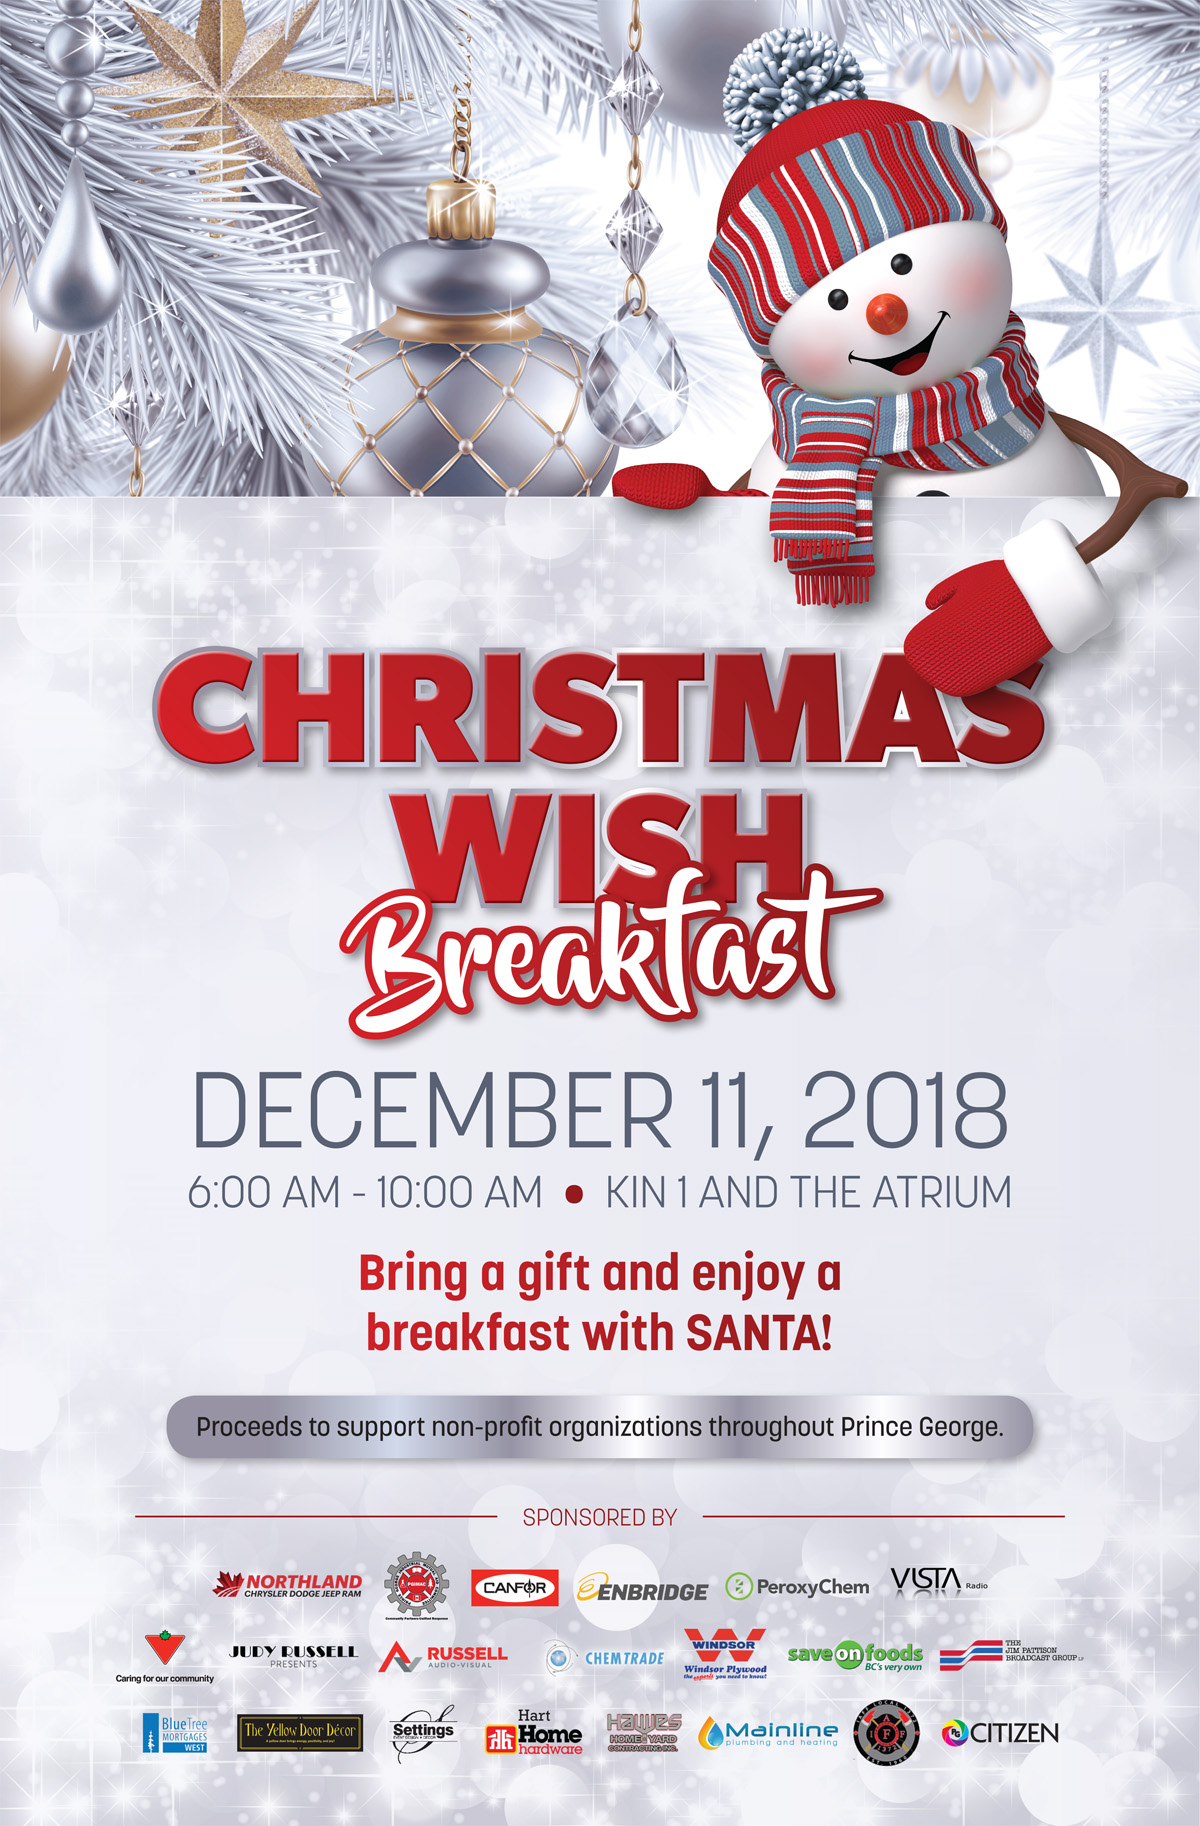 Christmas Wish Breakfast set for December 11 – Prince George Daily News